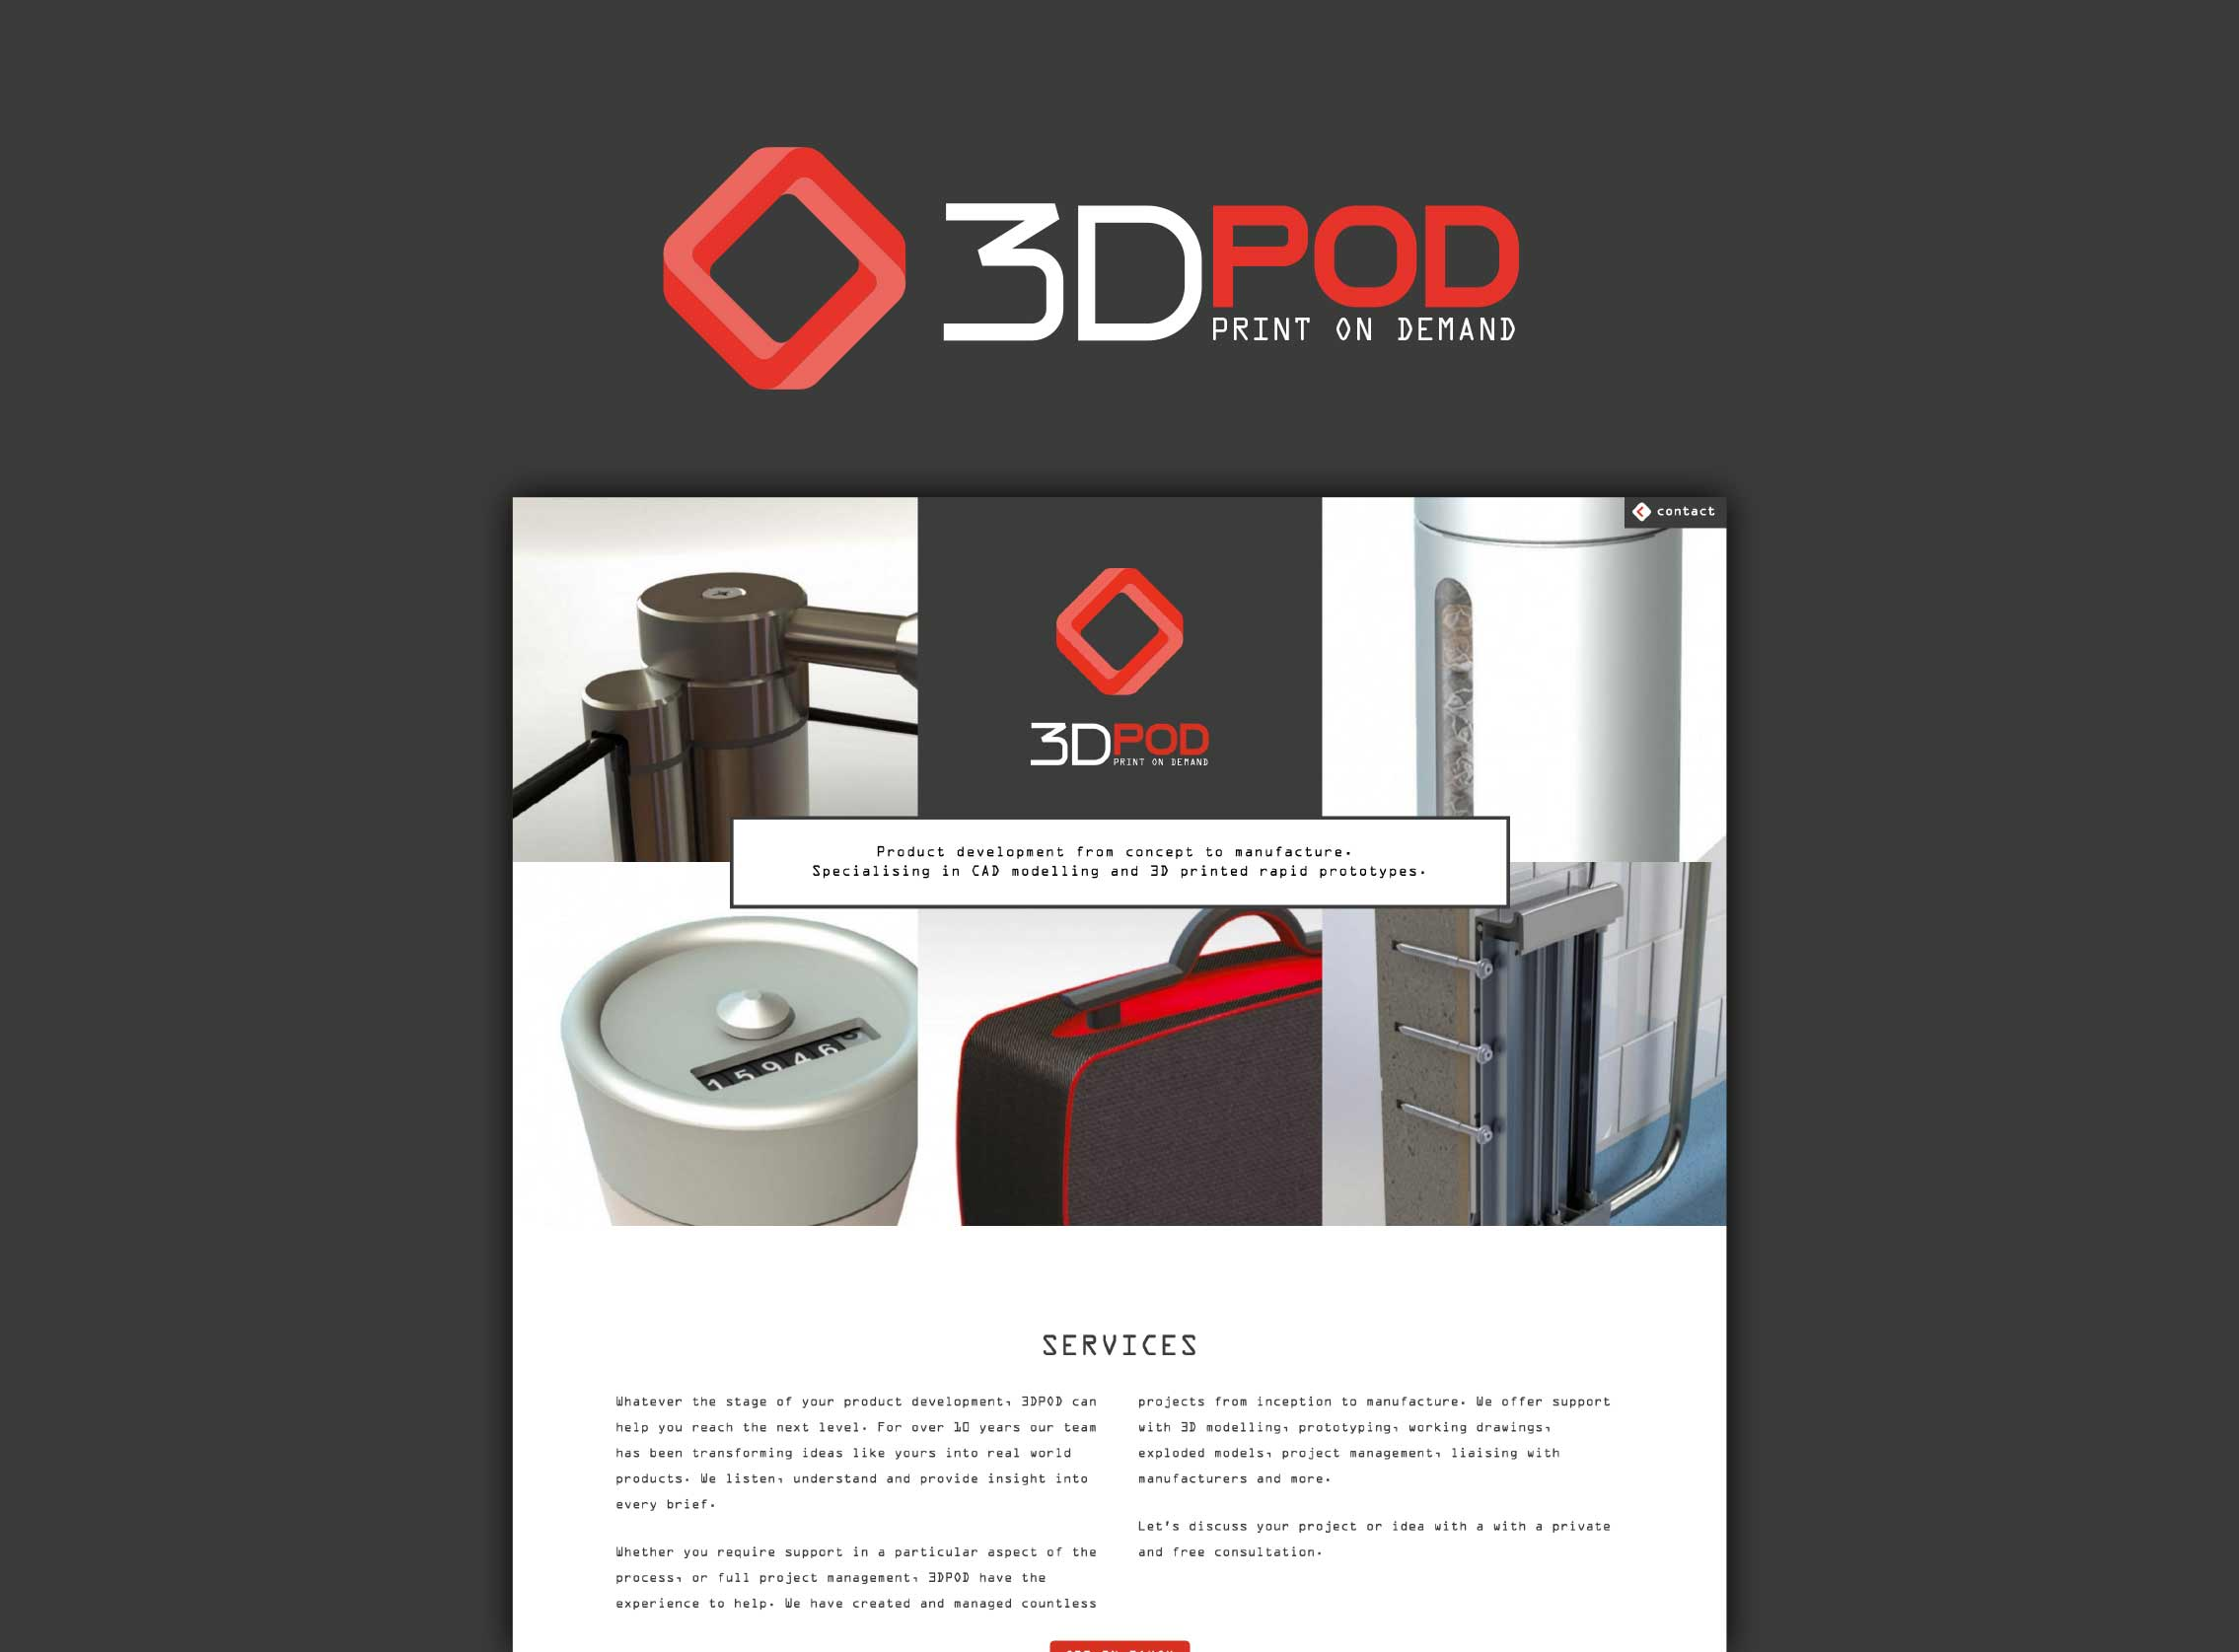 3DPOD website and logo graphic by Geoff Muskett